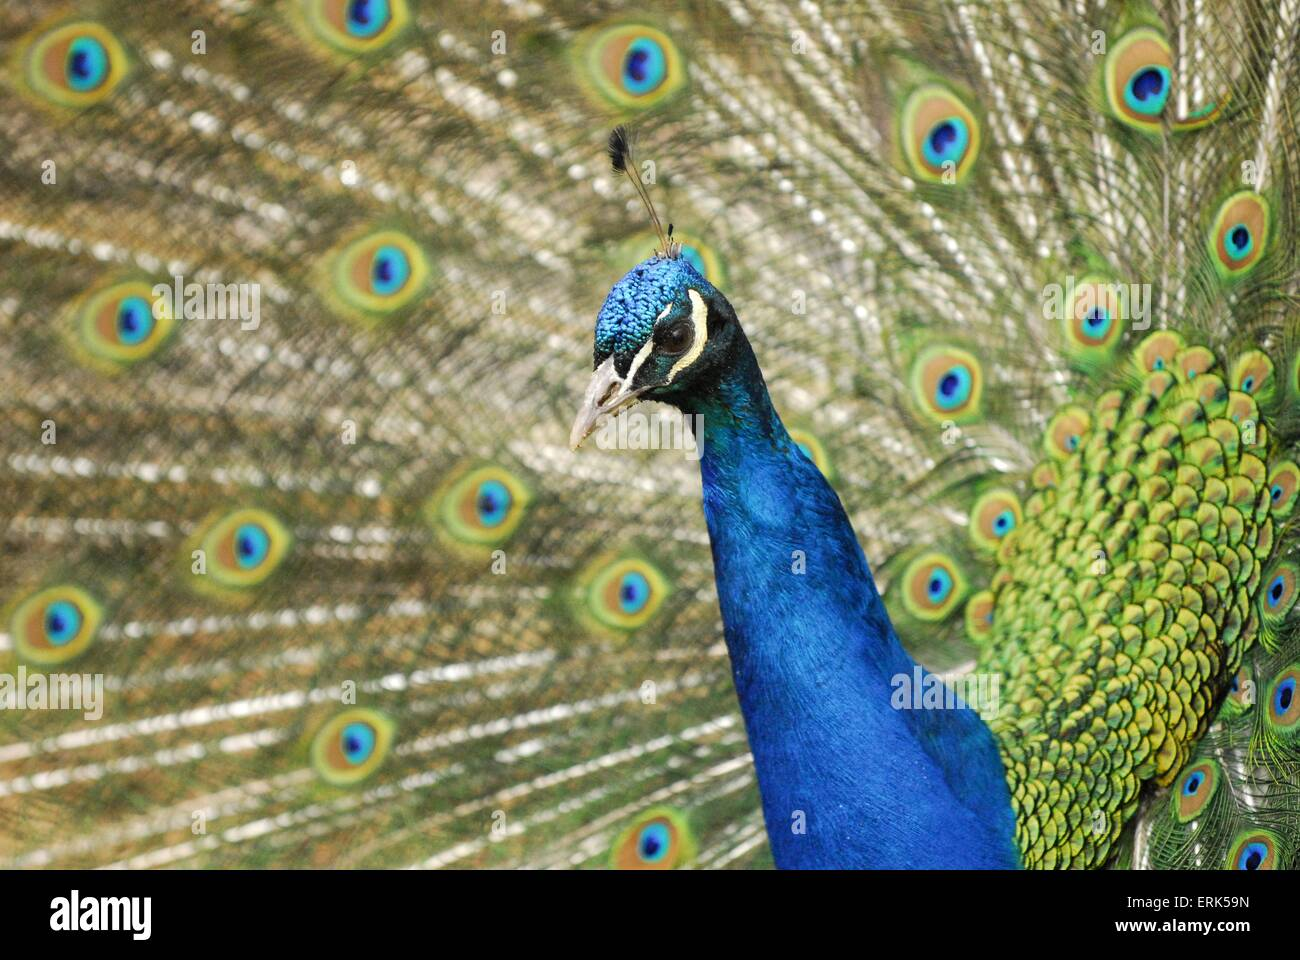 peacock - Stock Image